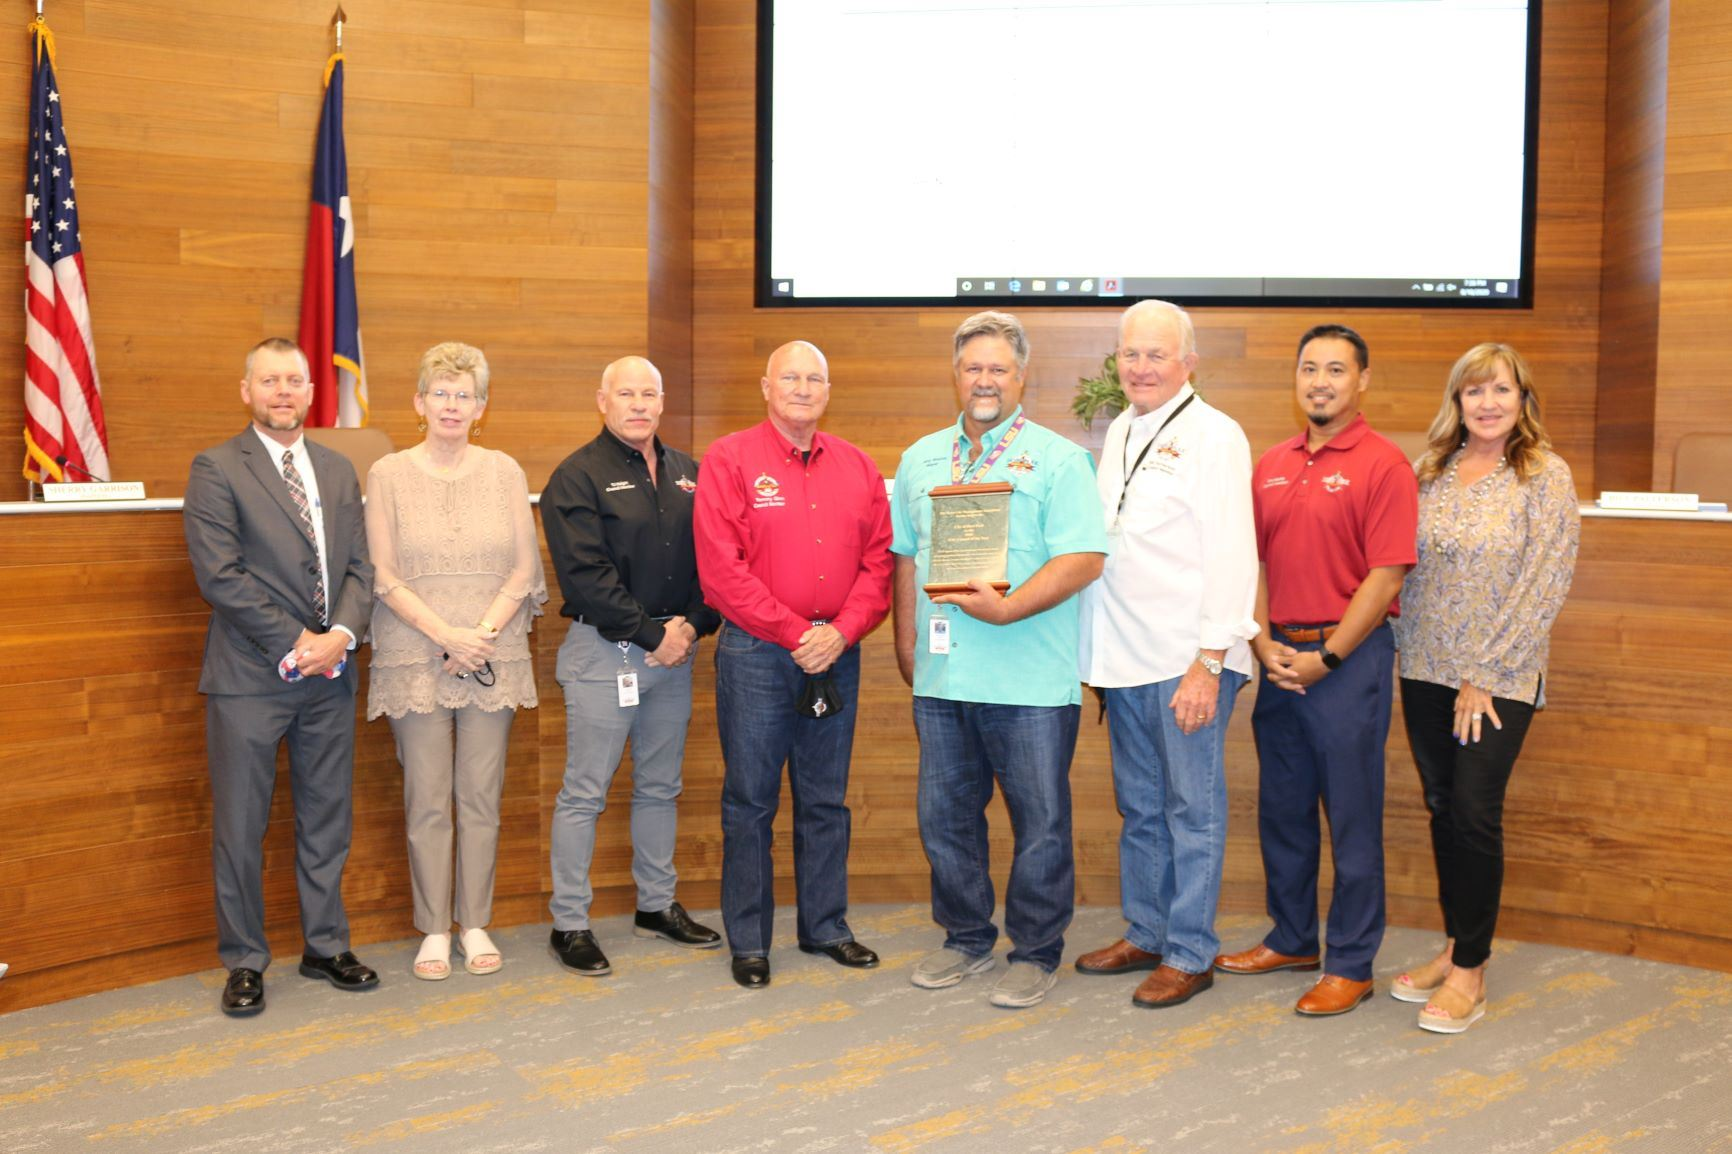 Deer Park City Council award presentation